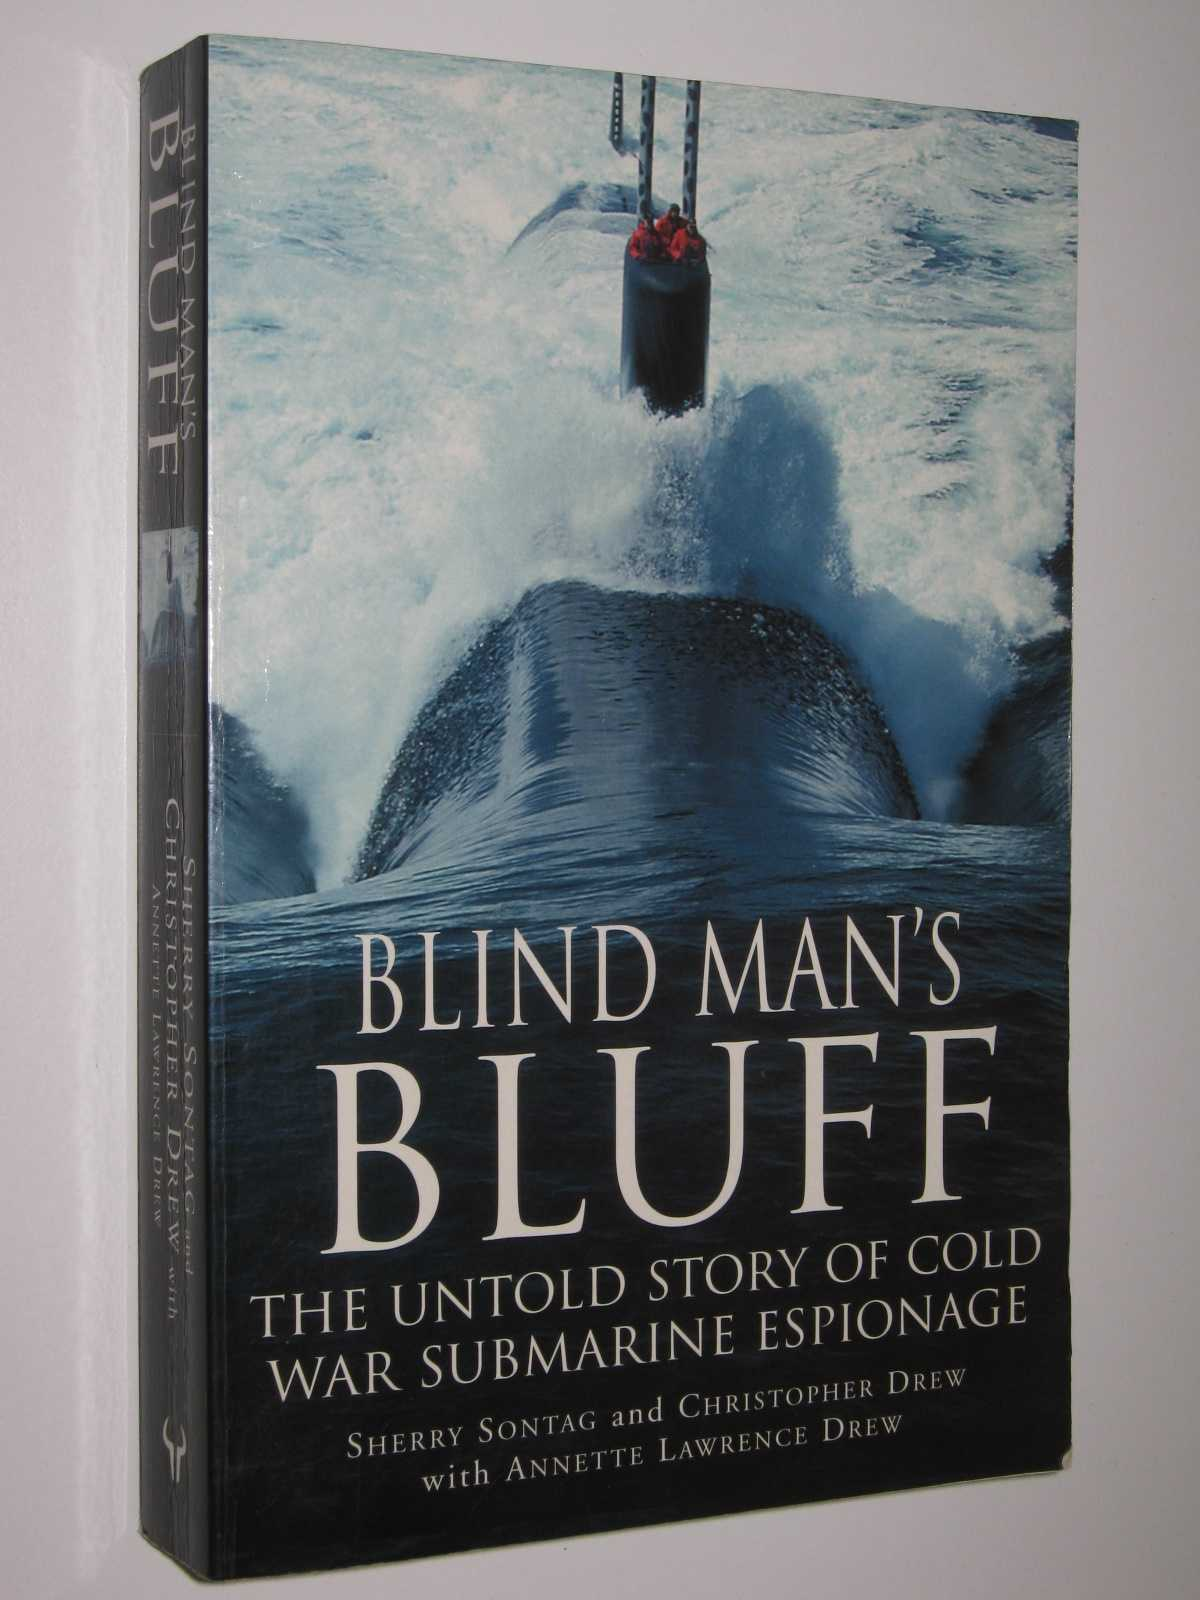 Image for Blind Man's Bluff : The Untonld Story f Cold War Submarine Espionage